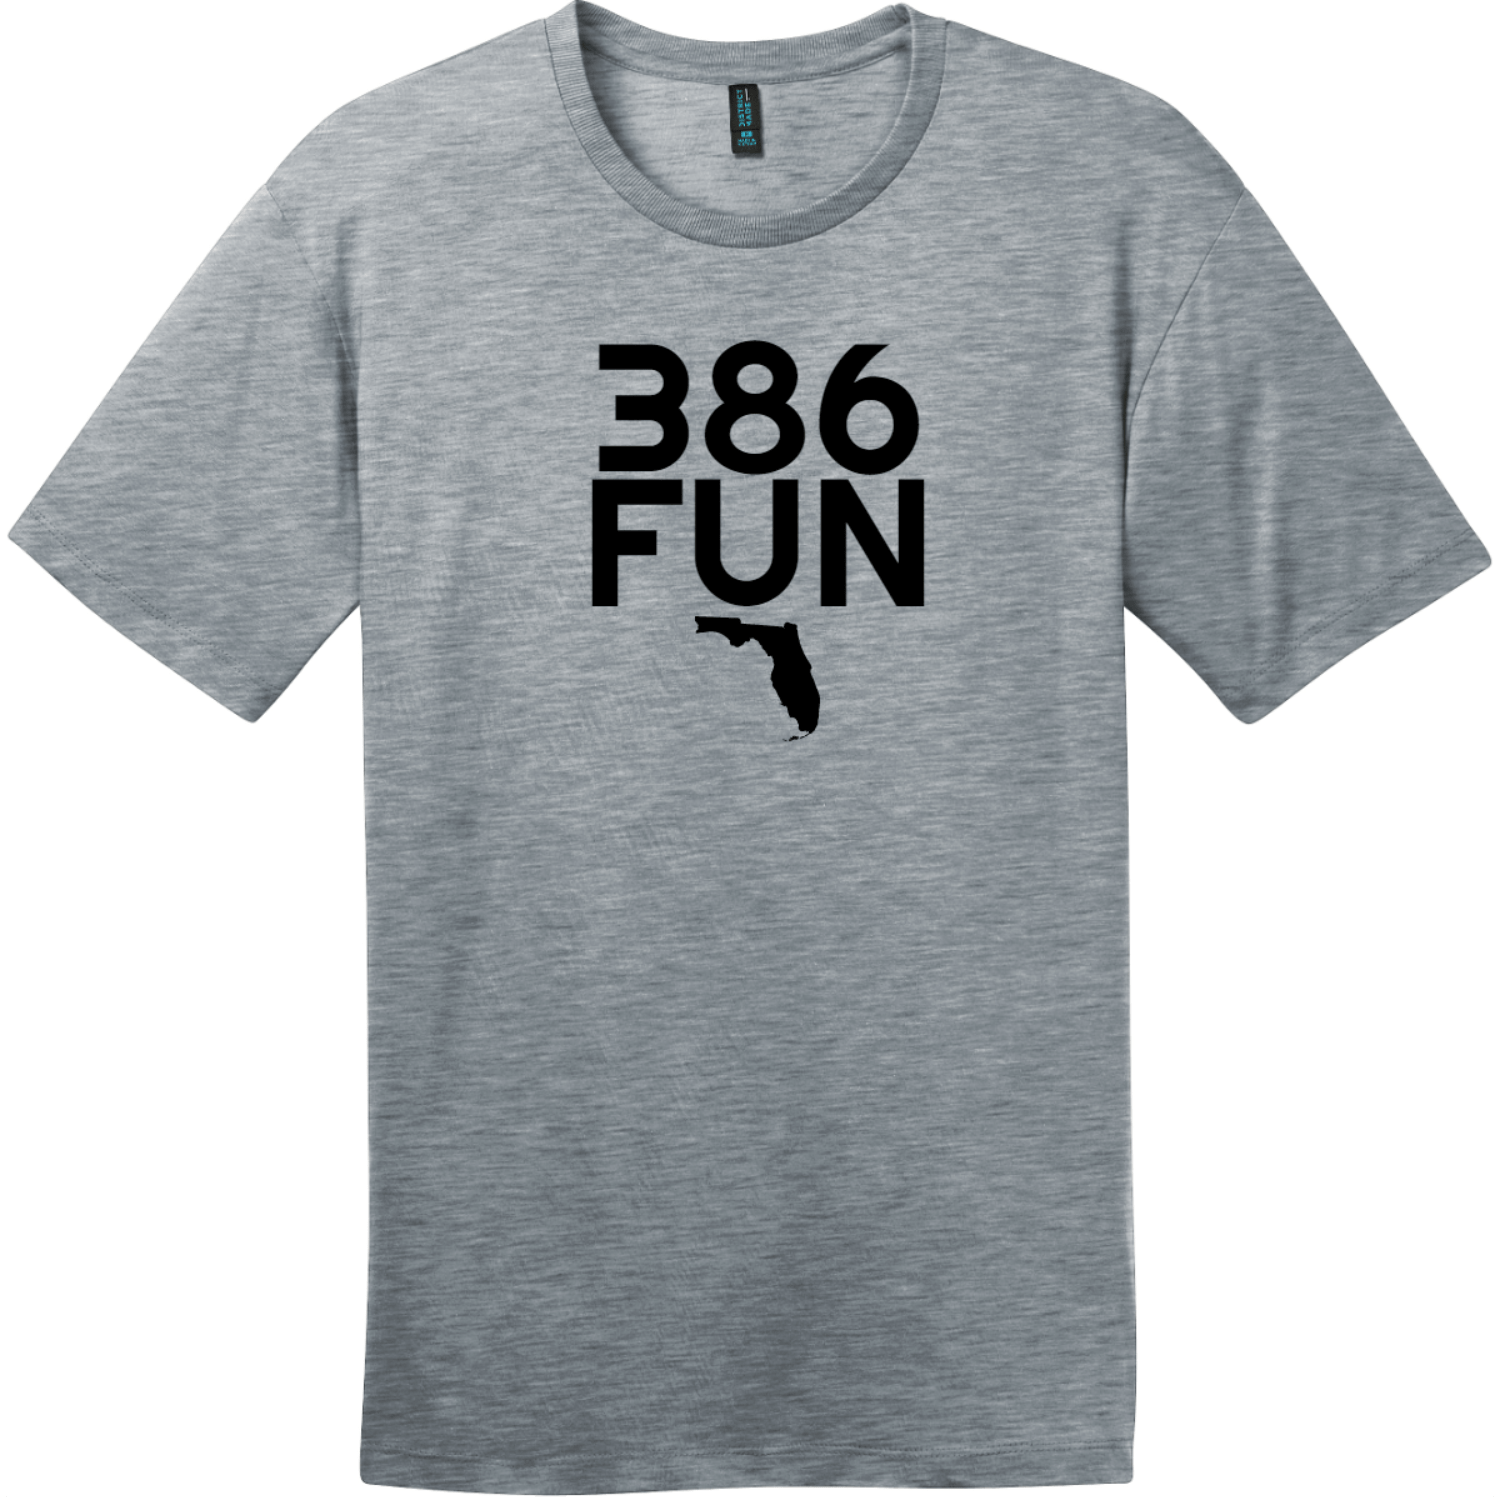 386 Fun Florida T-Shirt Heathered Steel District Perfect Weight Tee DT104